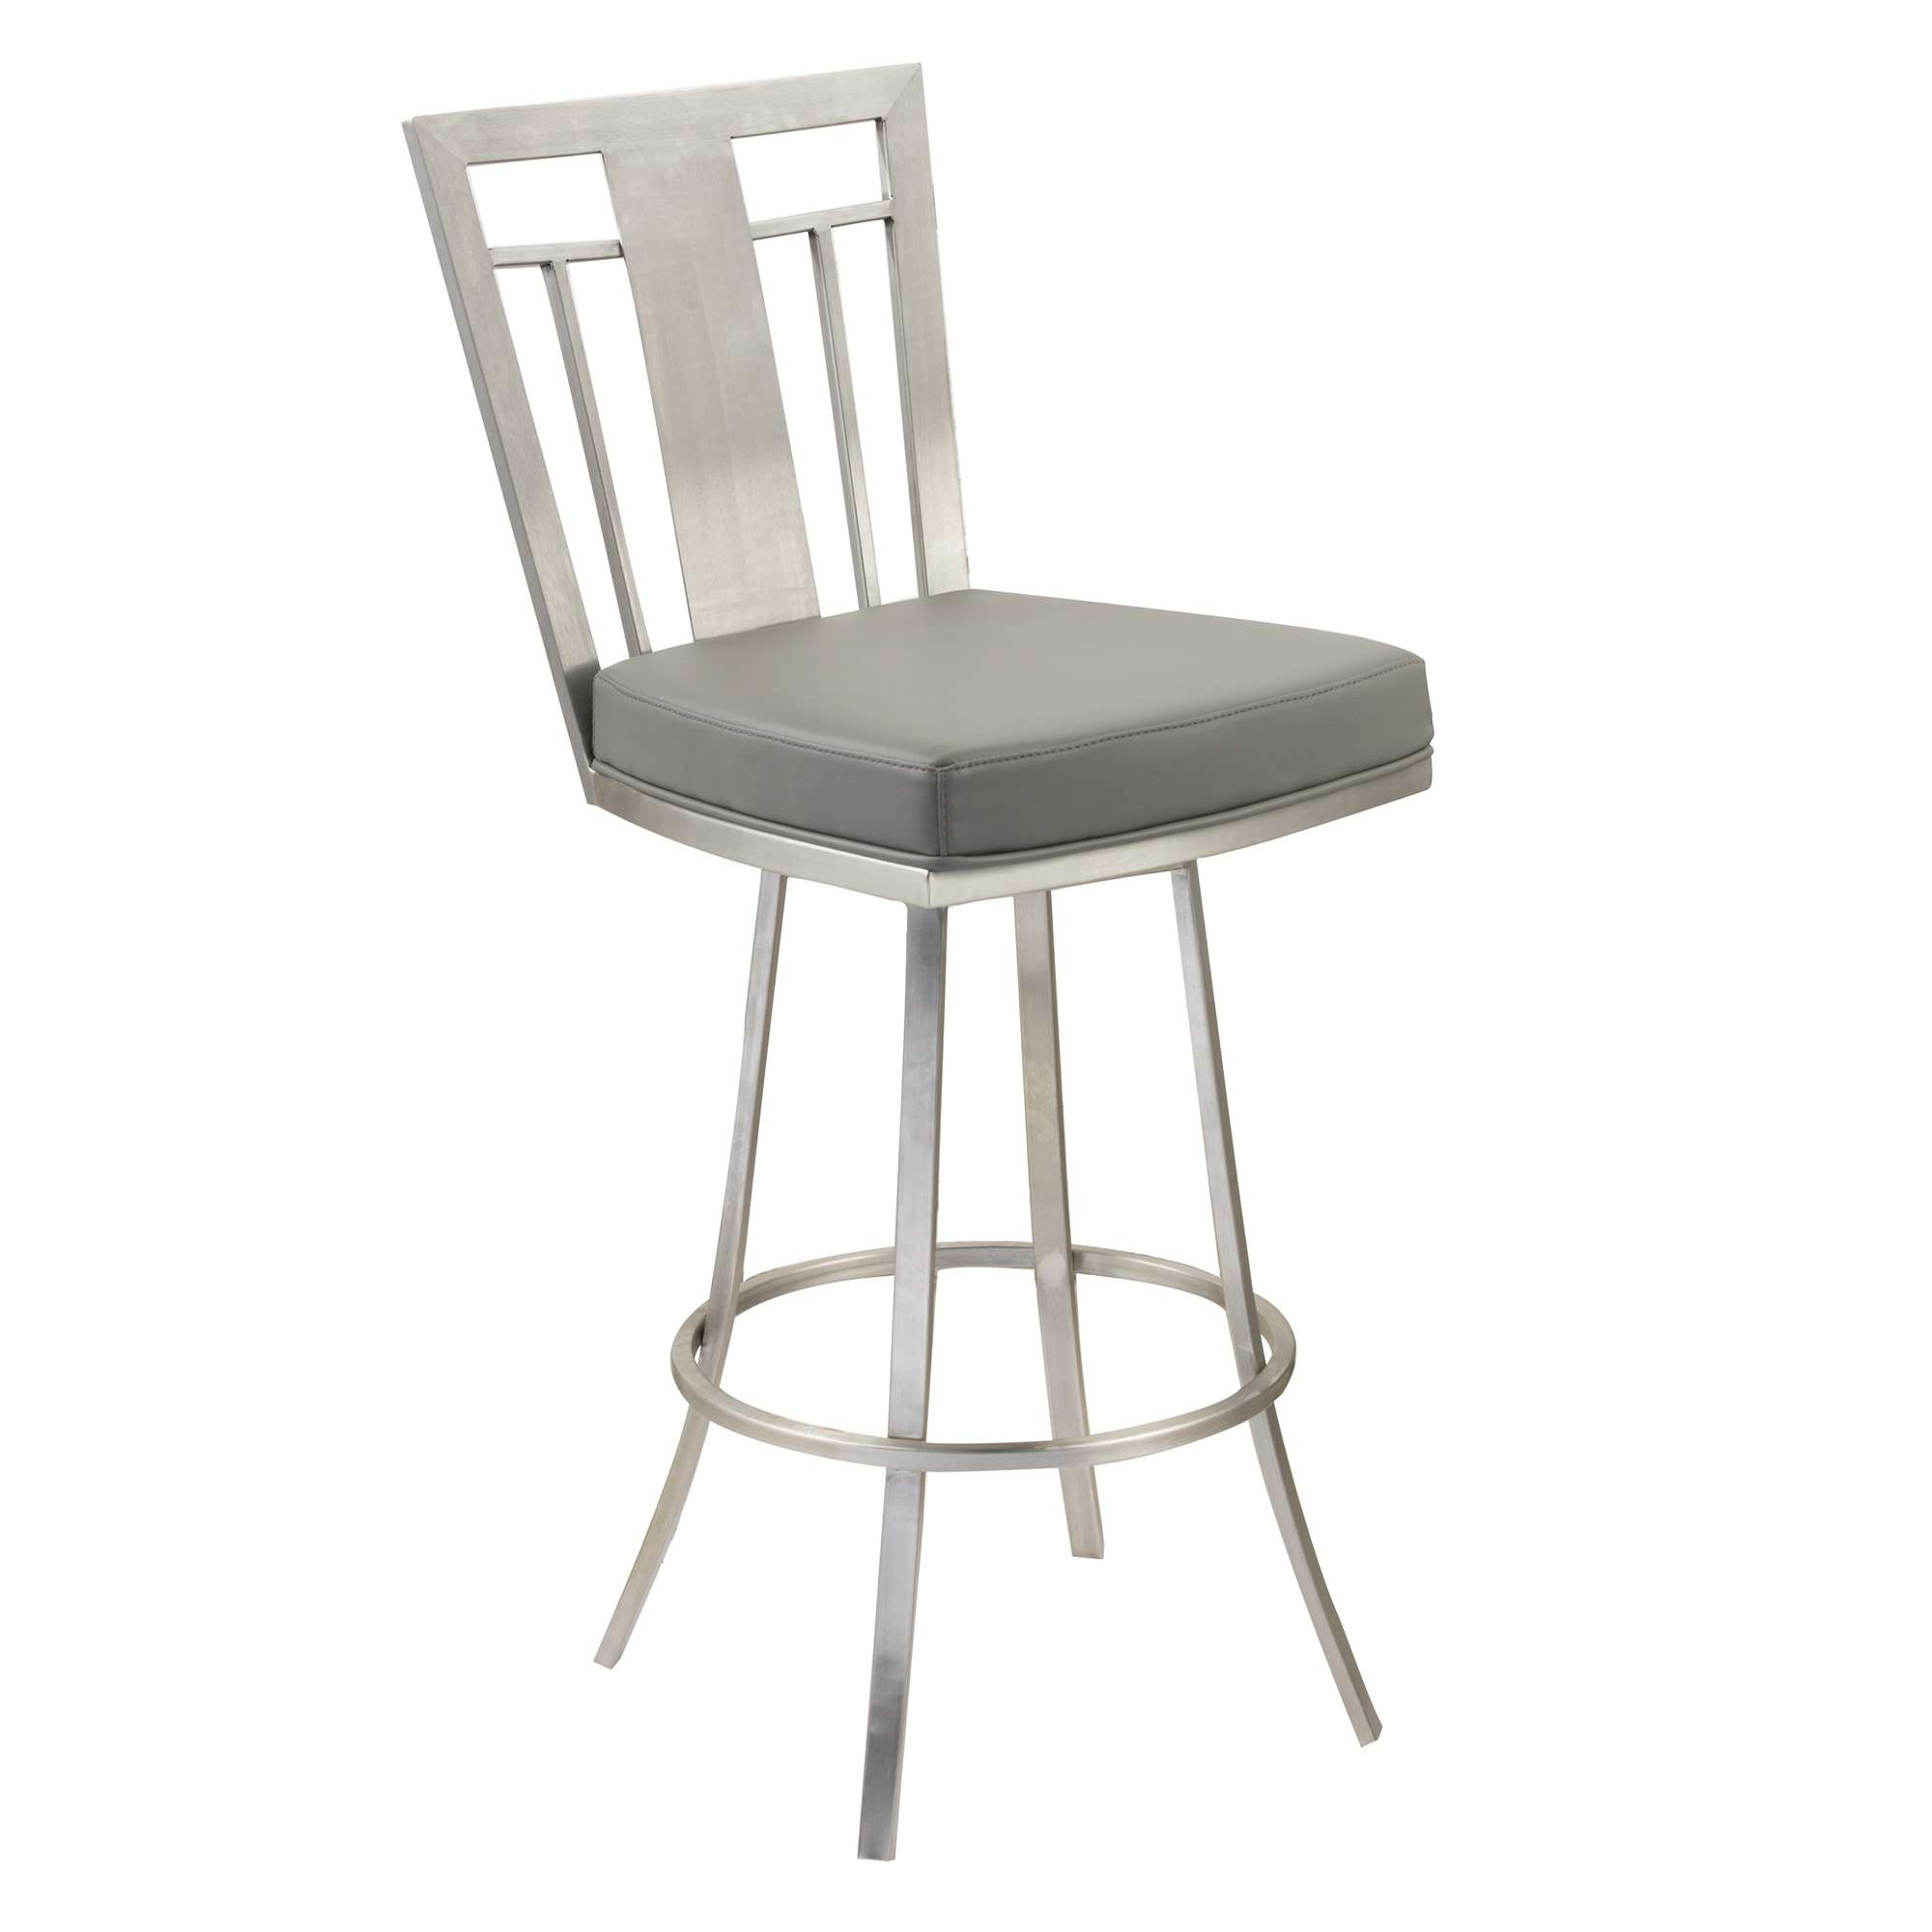 "Cleo Gray and Stainless Steel 30"" Modern Swivel Barstool"